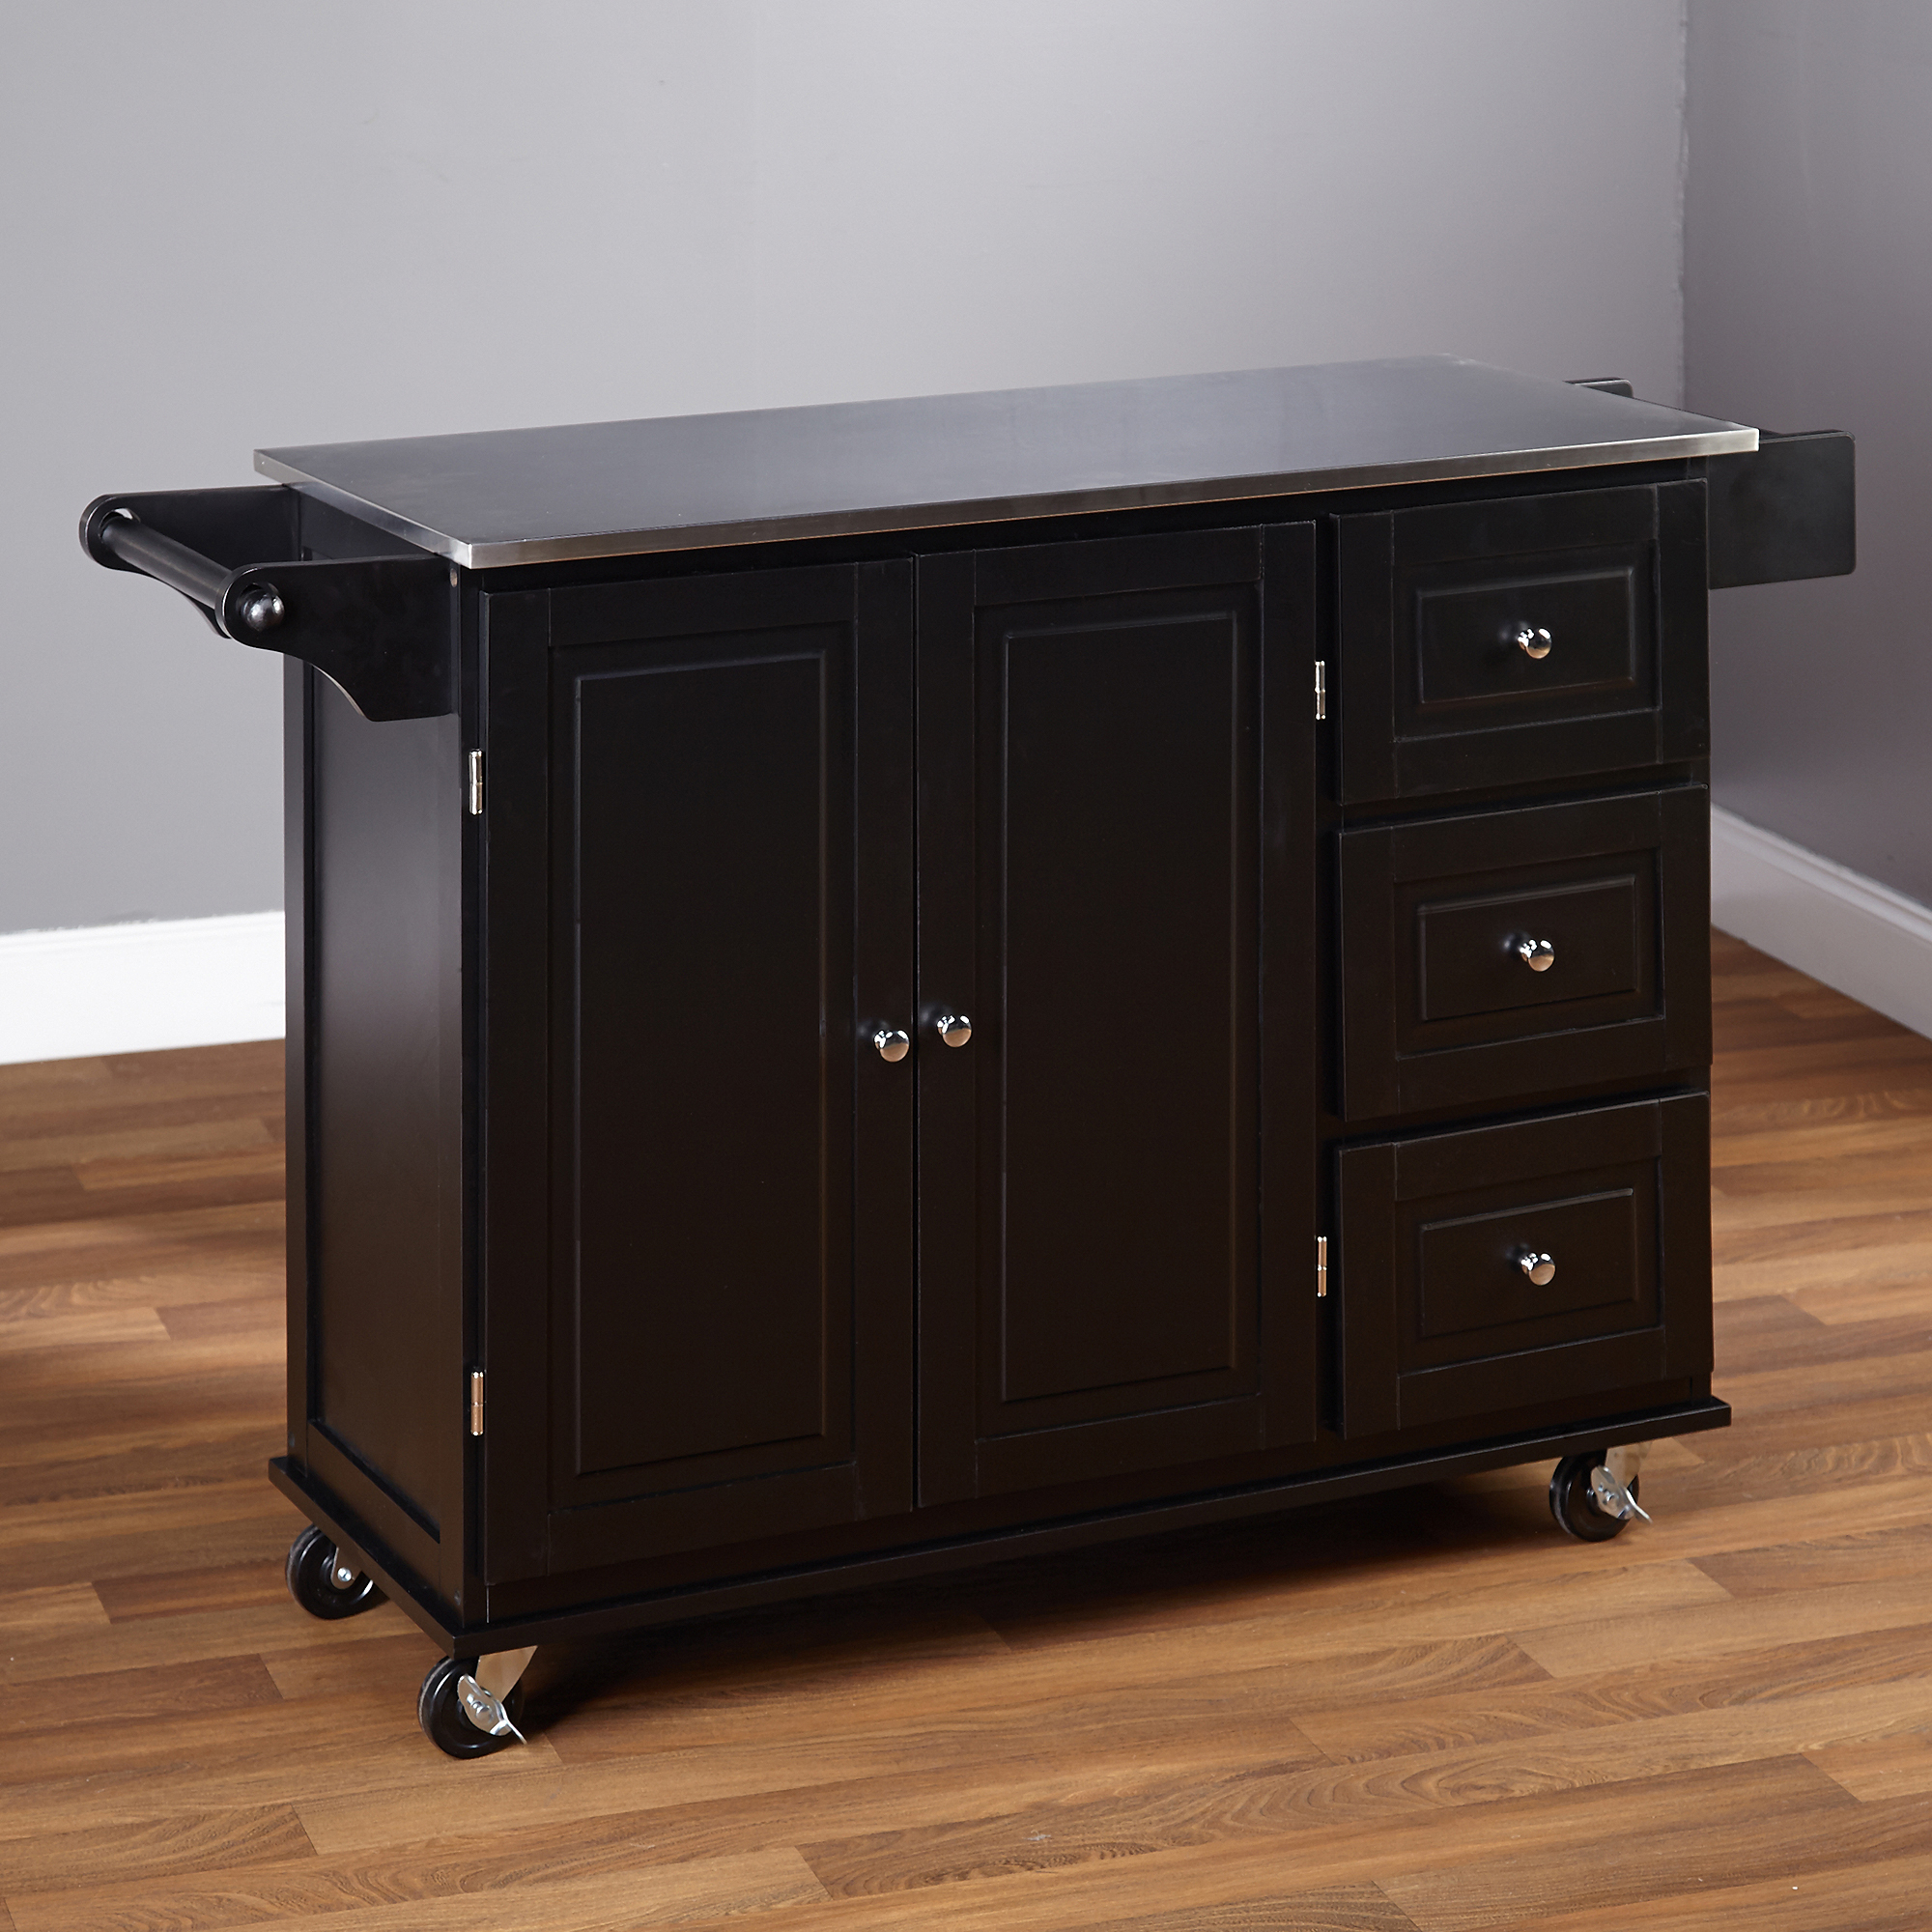 Sundance Kitchen Cart with Stainless Steel Top Black Walmart